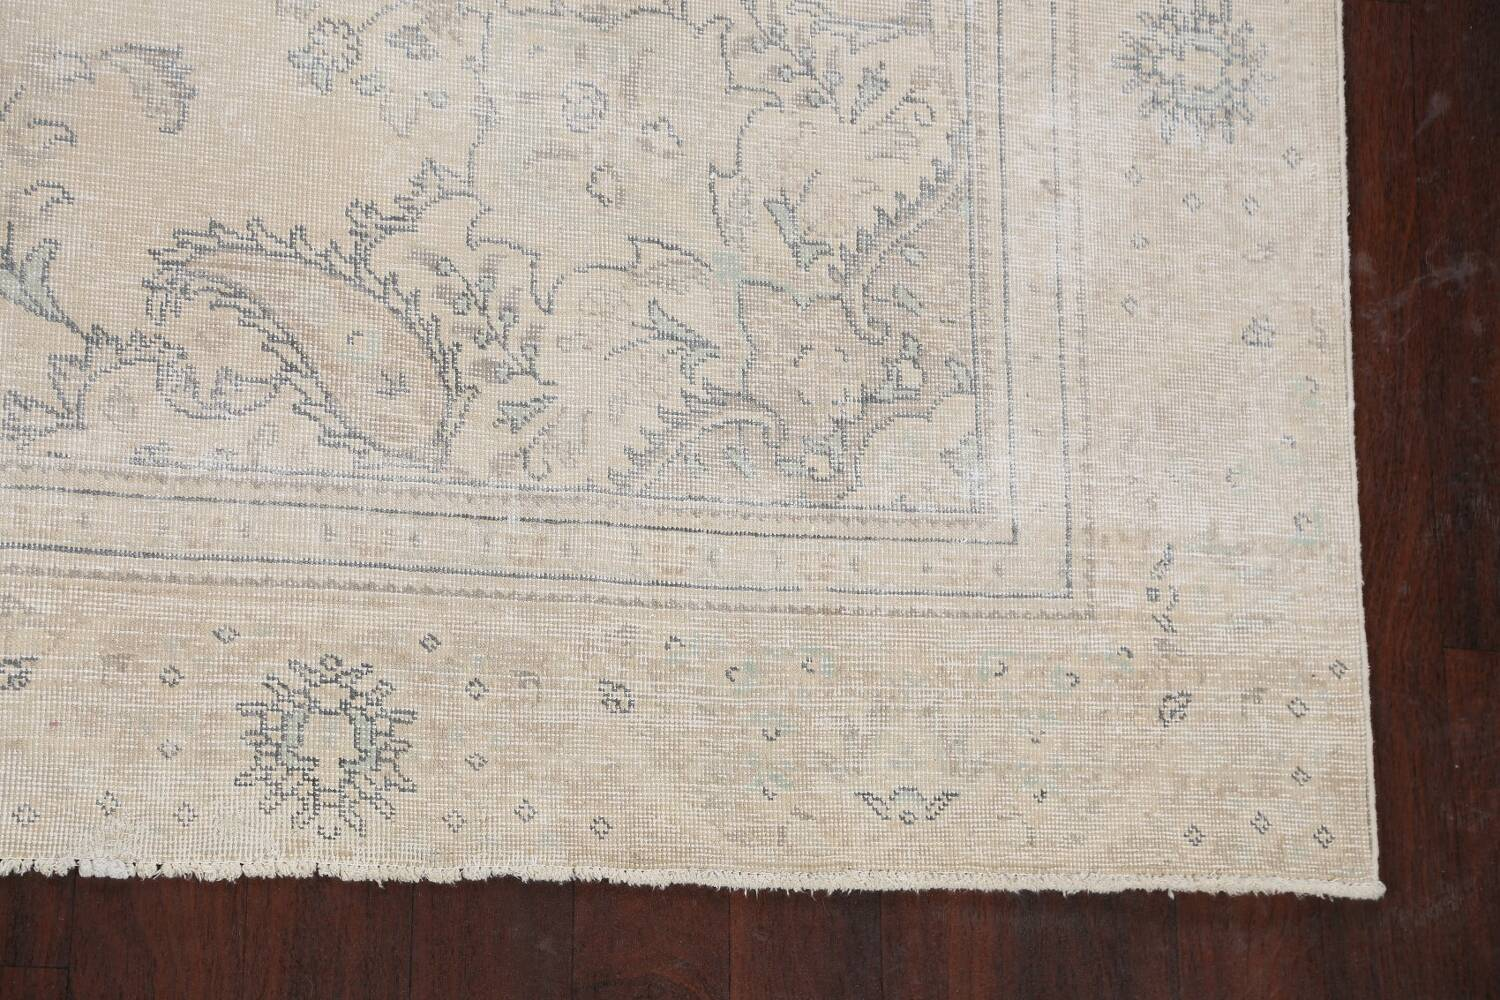 Muted Distressed Floral Tabriz Persian Area Rug 8x12 image 5